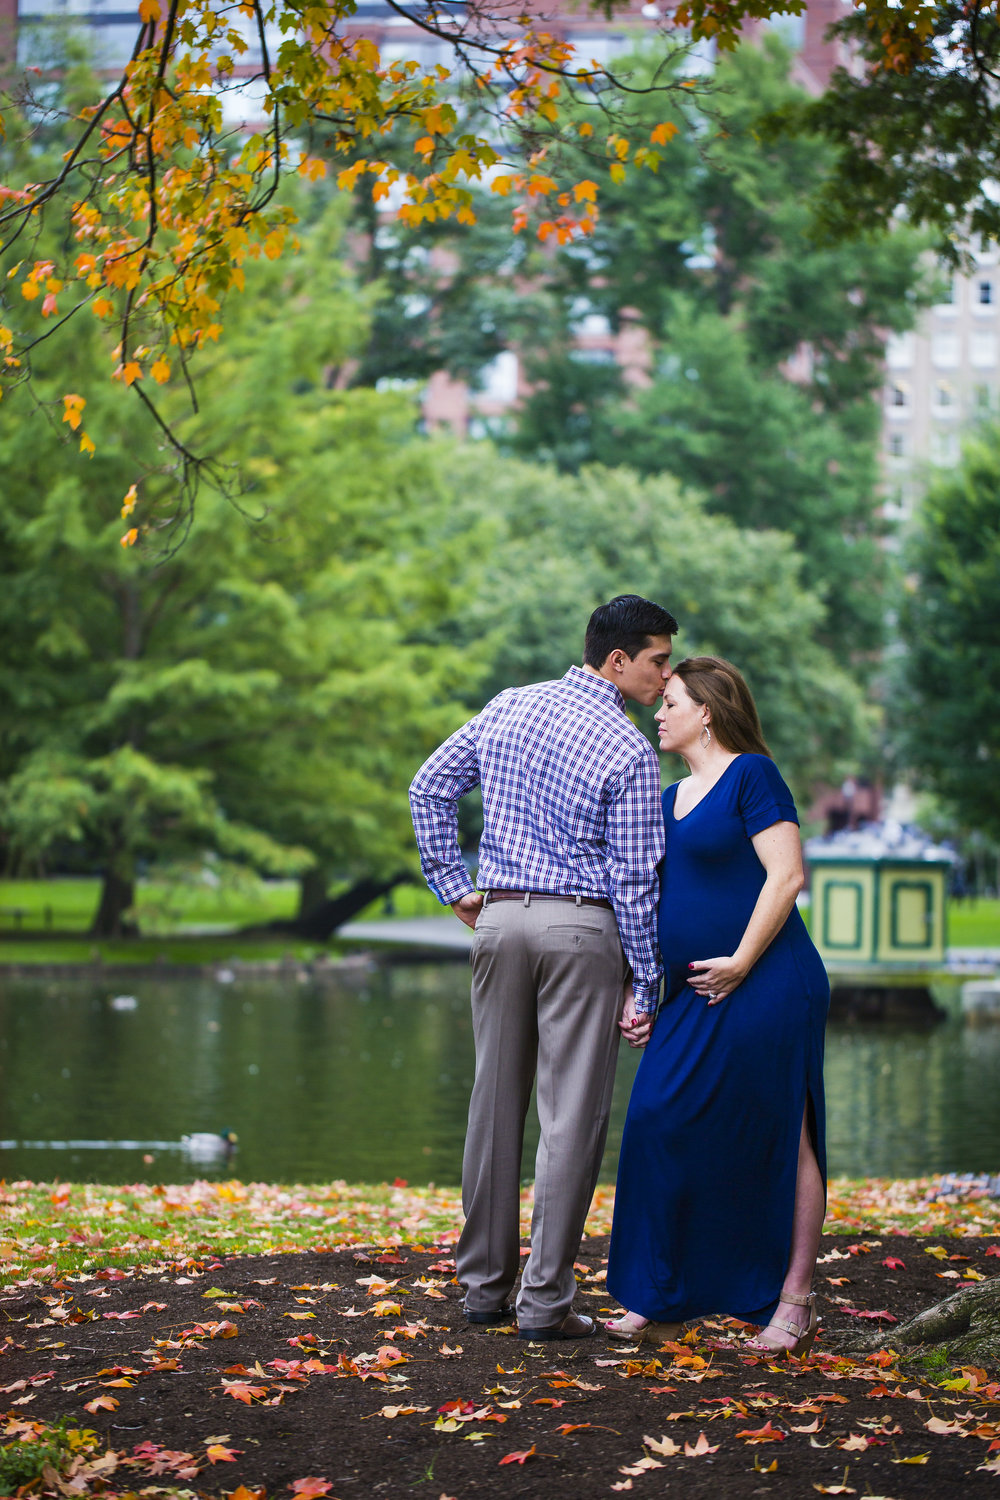 8C2A6332 Giovanni The Photographer Best Boston Maternity New Born Photography Public Garden - Common.jpg